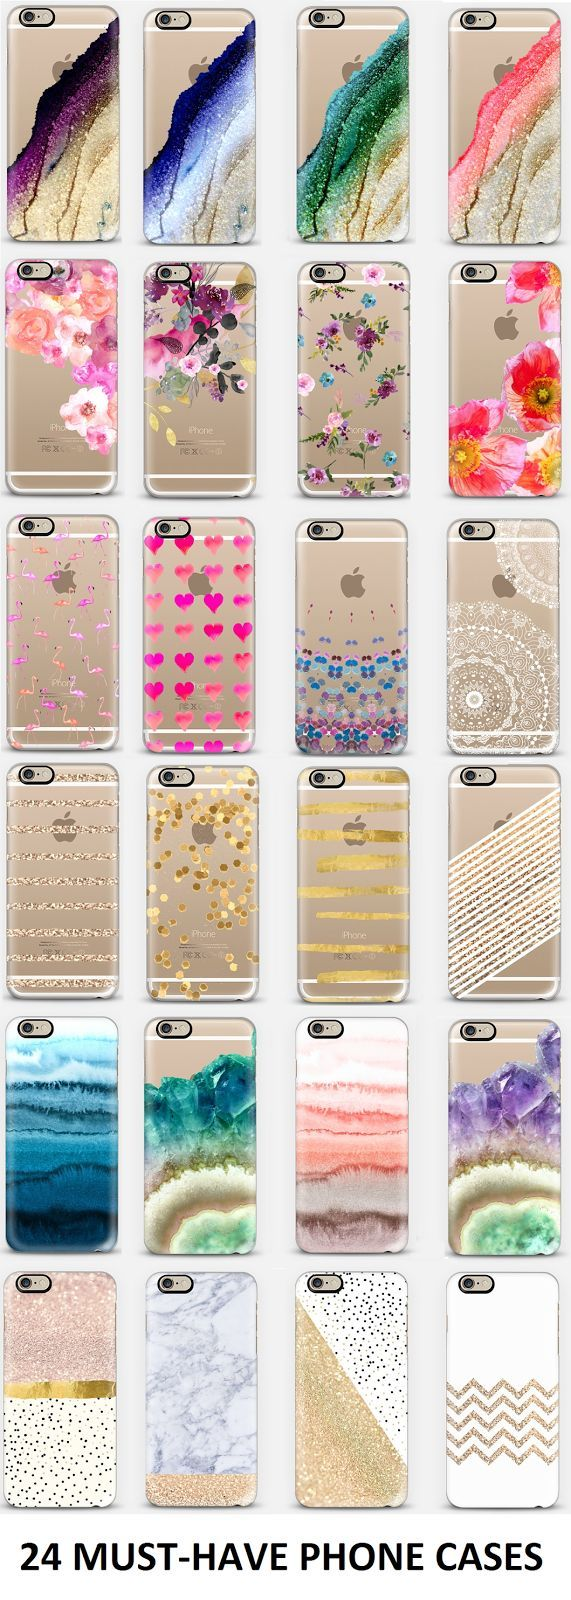 24 must-have phone cases